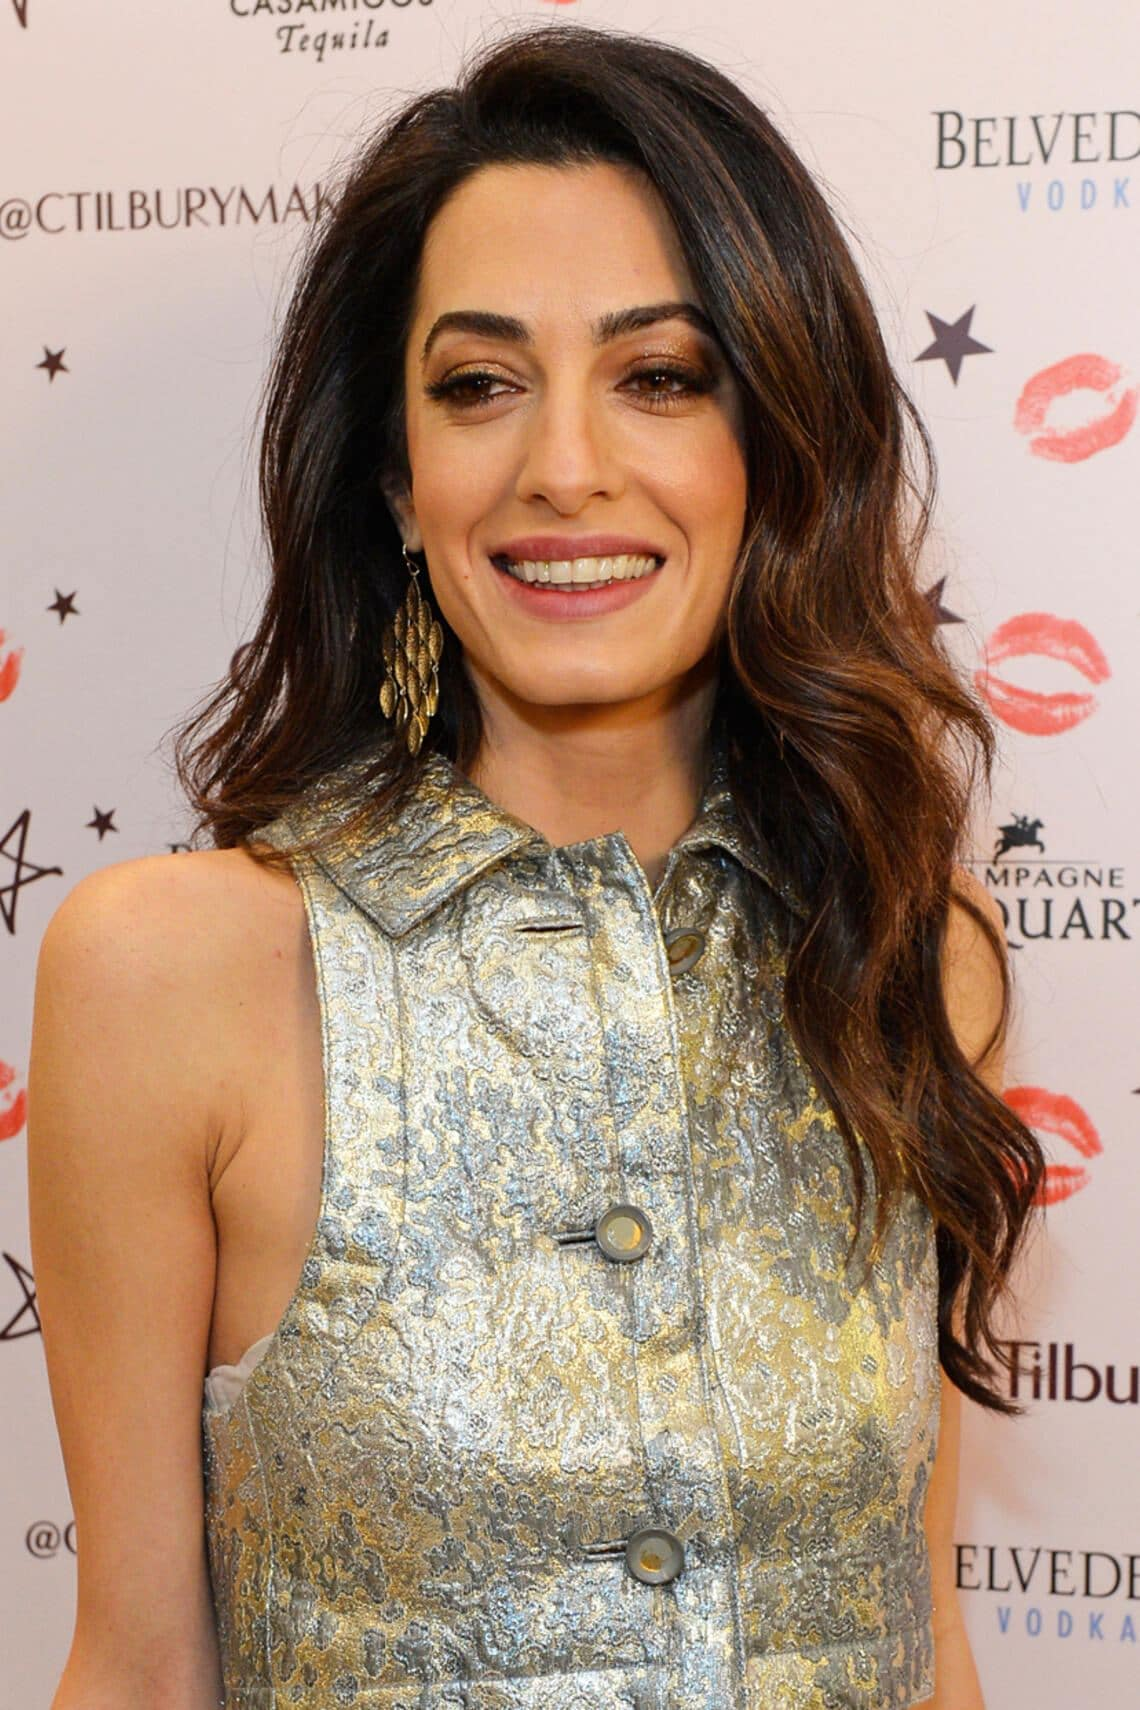 Amal Clooney Weihnachtsoutfit